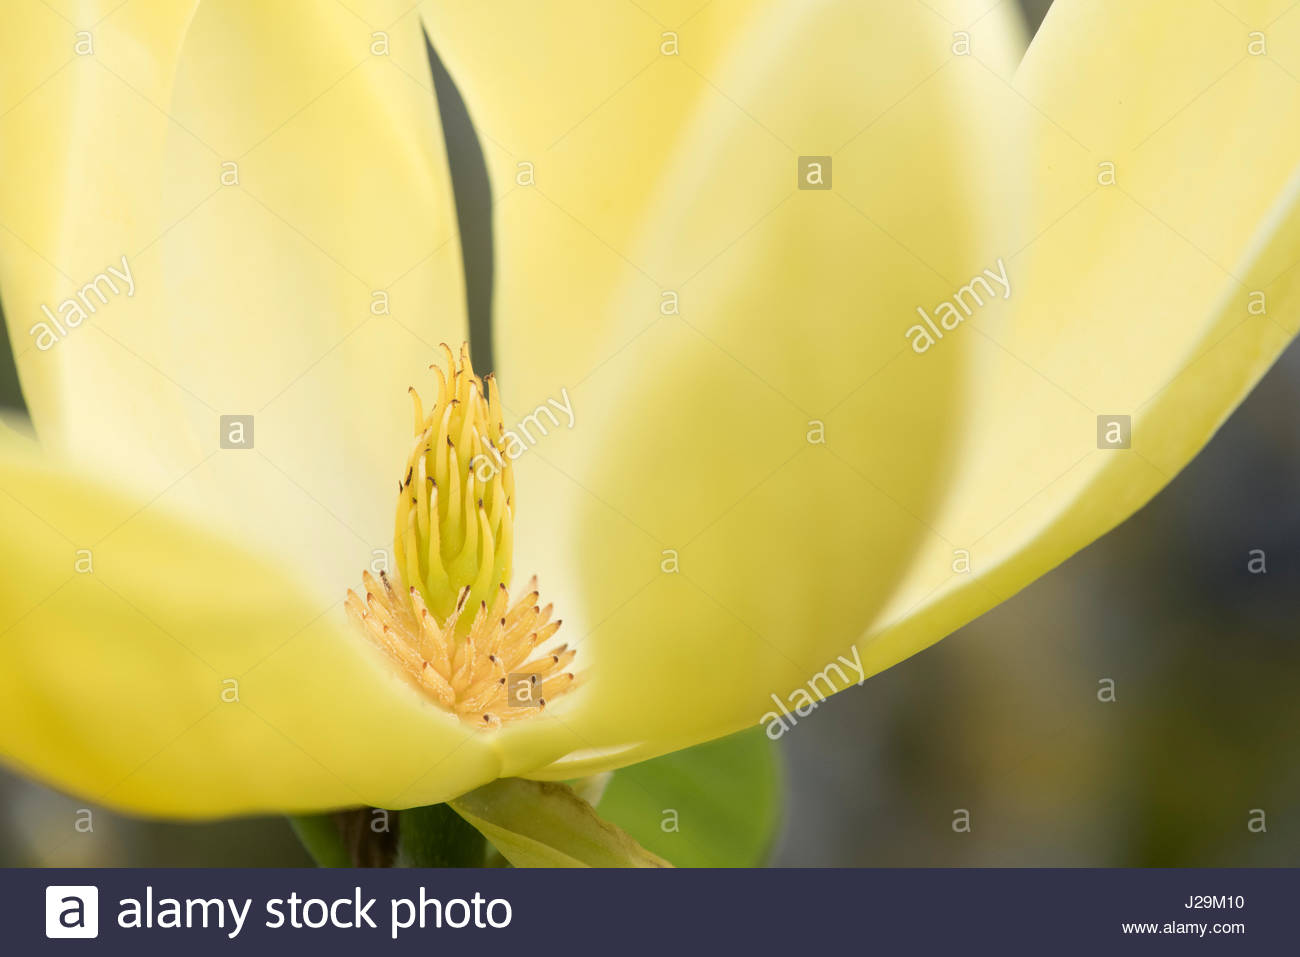 Magnolia daphne flower in april yellow flowering magnolias stock yellow flowering magnolias mightylinksfo